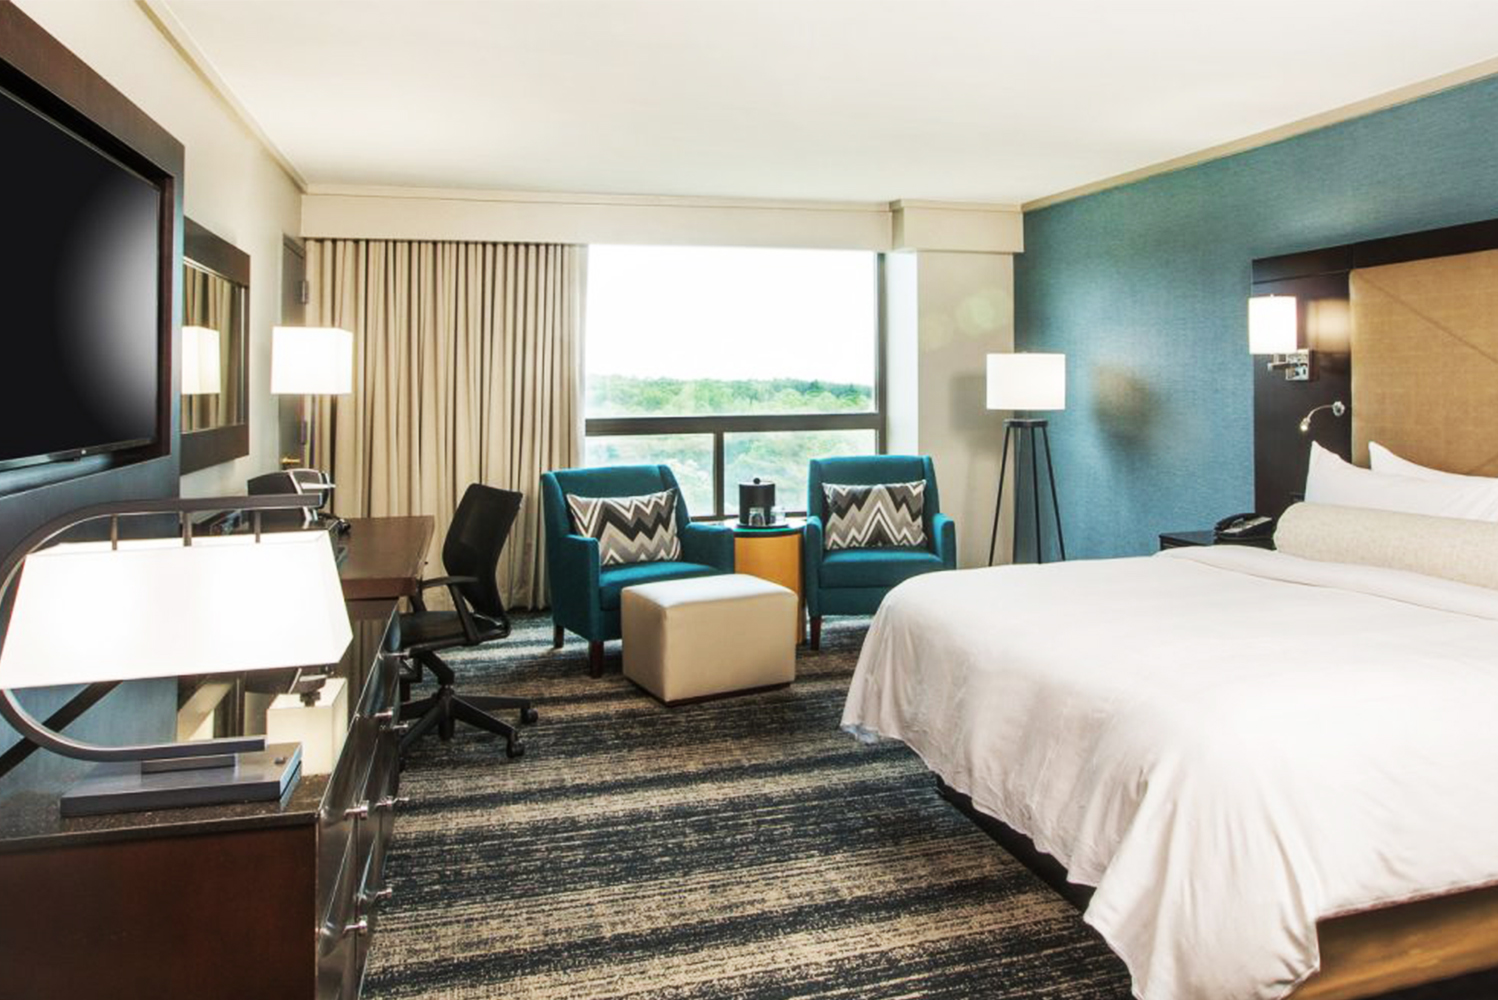 Boston Marriott Burlington completed a multi-phase transformation, which includes reimagined guestrooms.